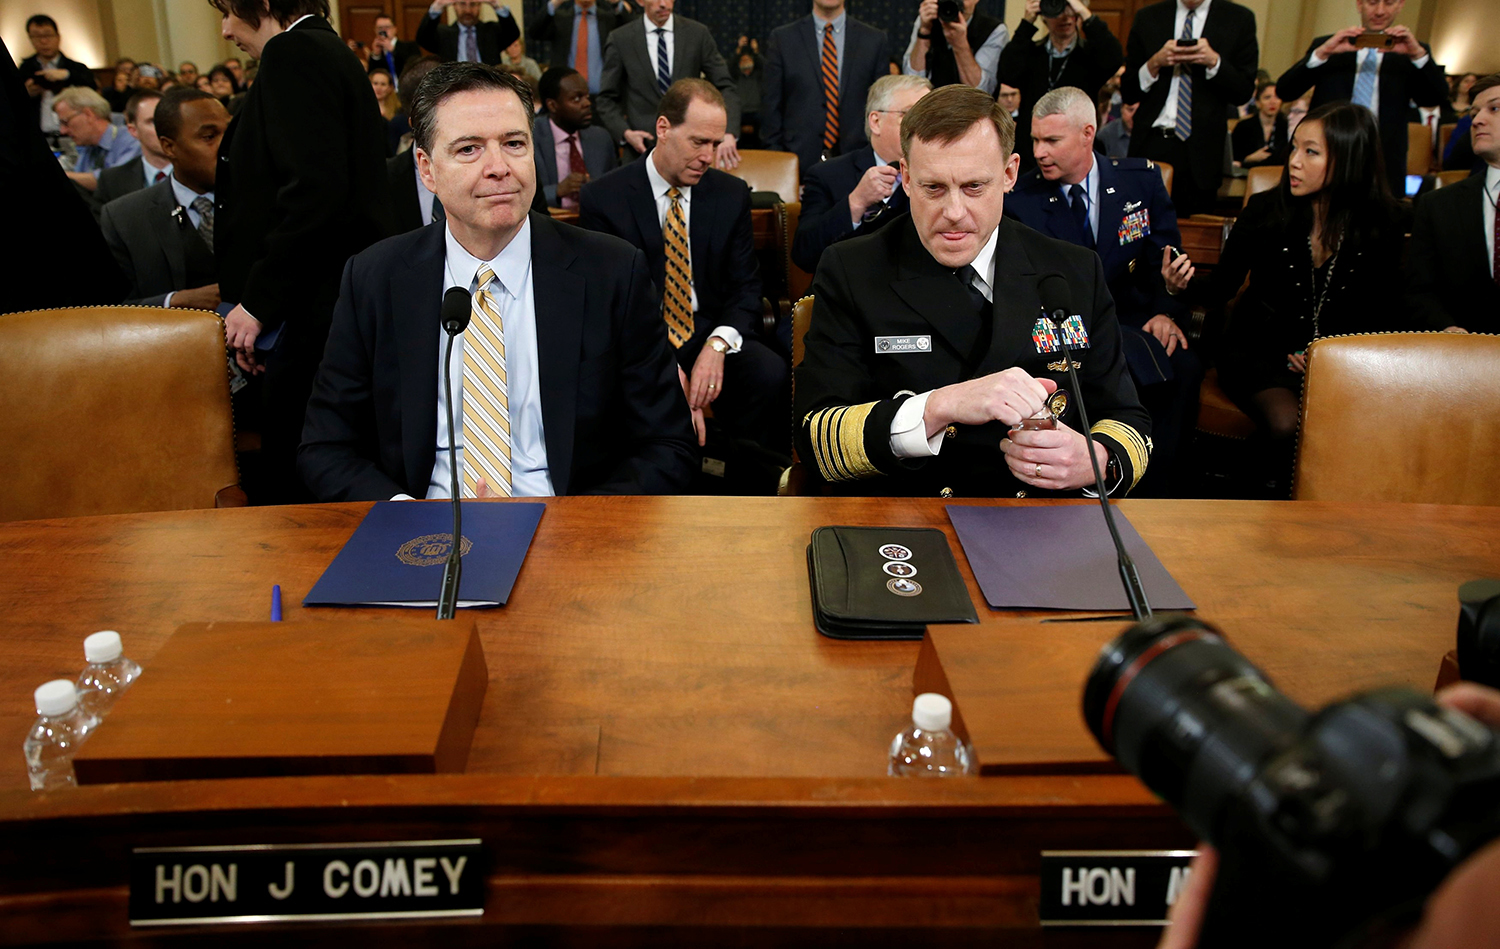 WASHINGTON 2017-03-21 FBI Director James Comey (L) and National Security Agency Director Mike Rogers take their seats at a House Intelligence Committee hearing into alleged Russian meddling in the 2016 U.S. election, on Capitol Hill in Washington, U.S., March 20, 2017. REUTERS/Joshua Roberts TPX IMAGES OF THE DAY Photo: / REUTERS / TT / kod 72000